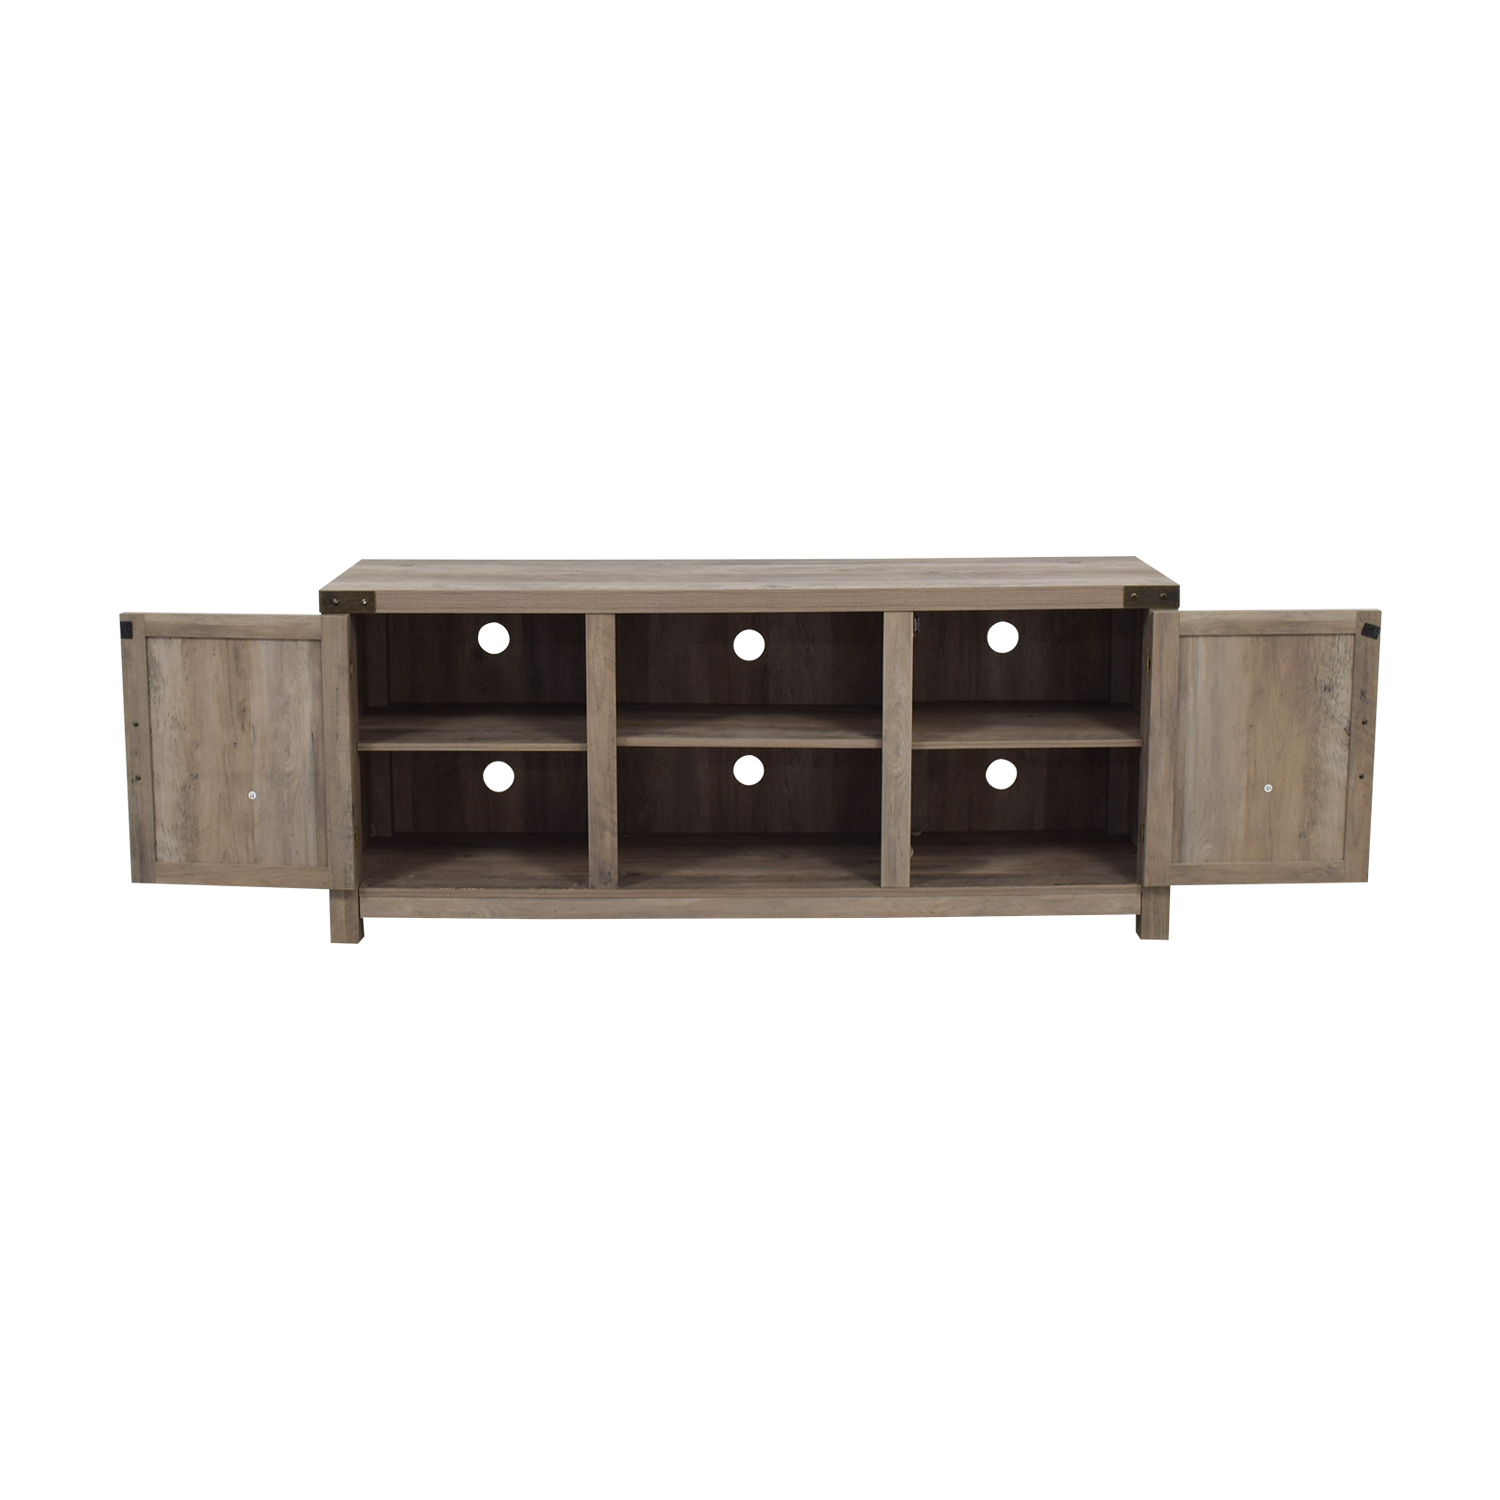 Rustic Wood Media Stand with Cabinets second hand